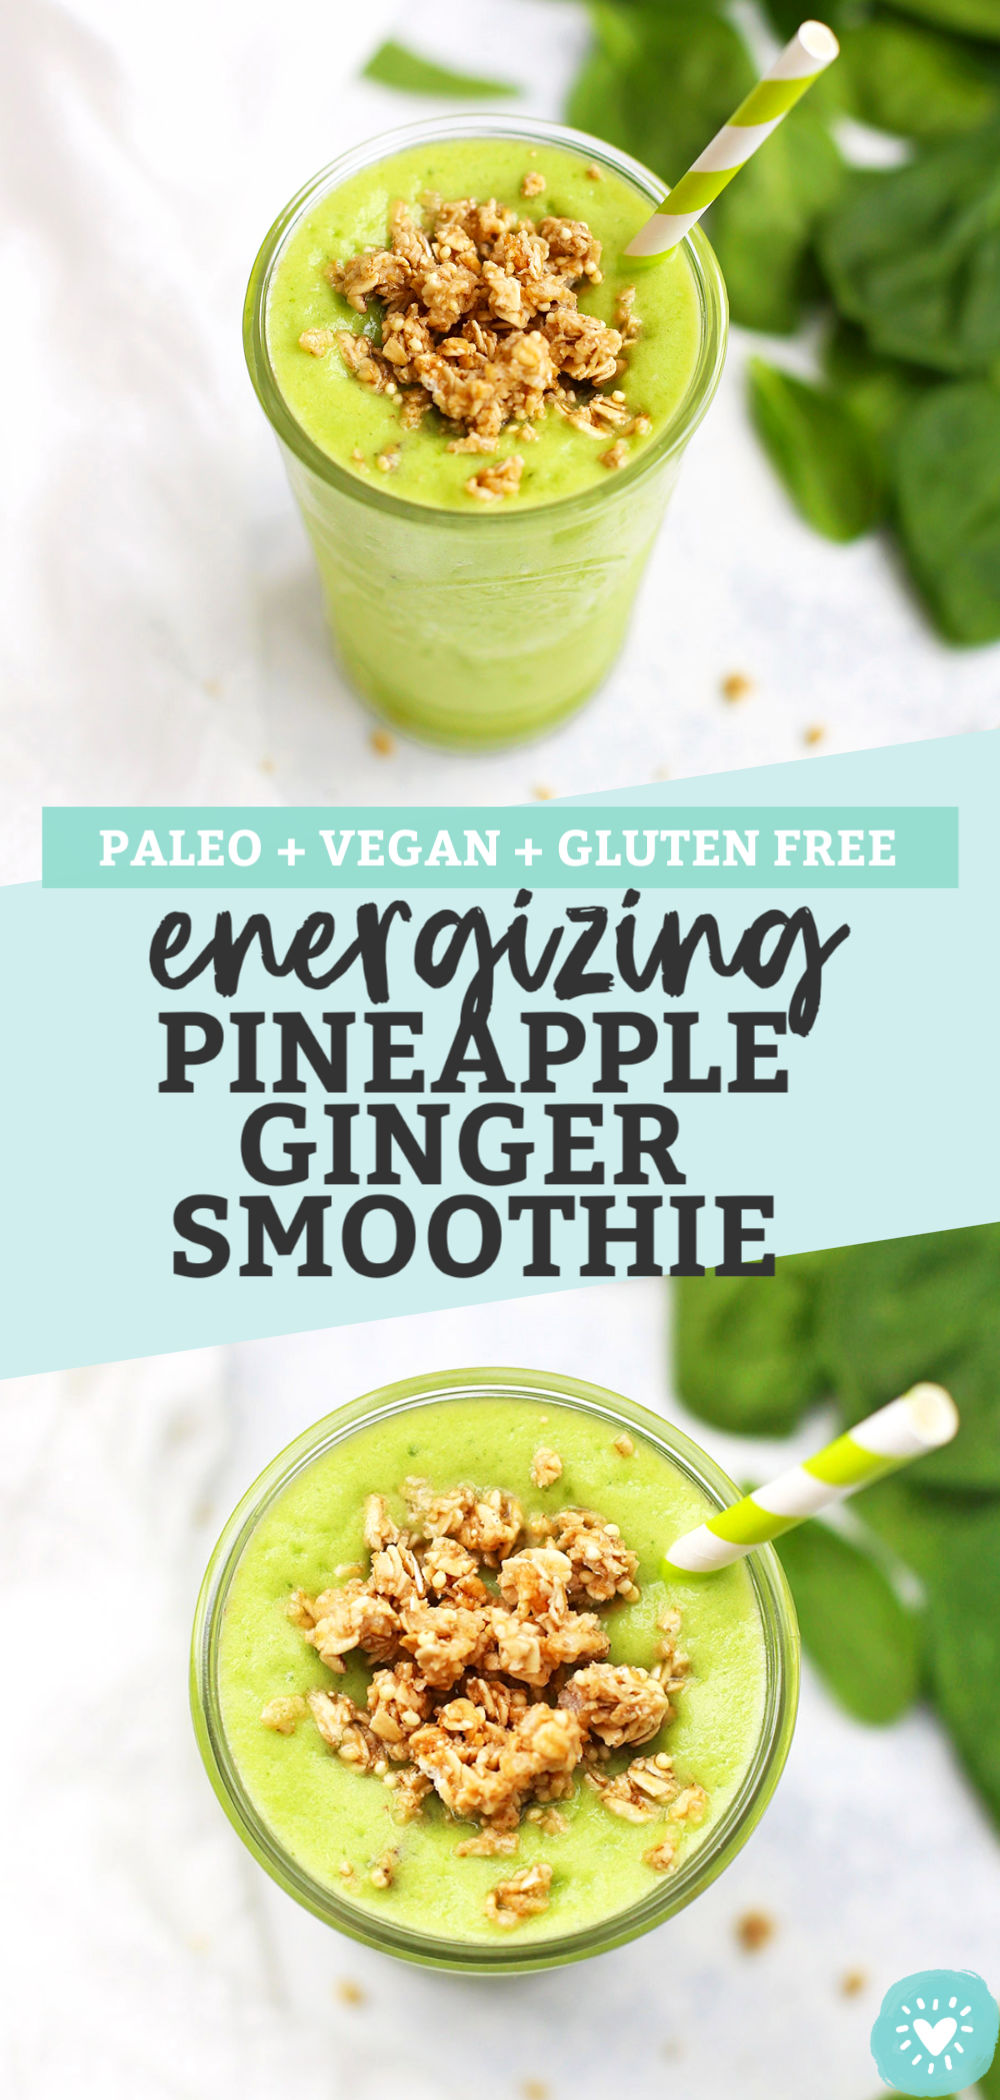 Pineapple Ginger Smoothie from One Lovely Life